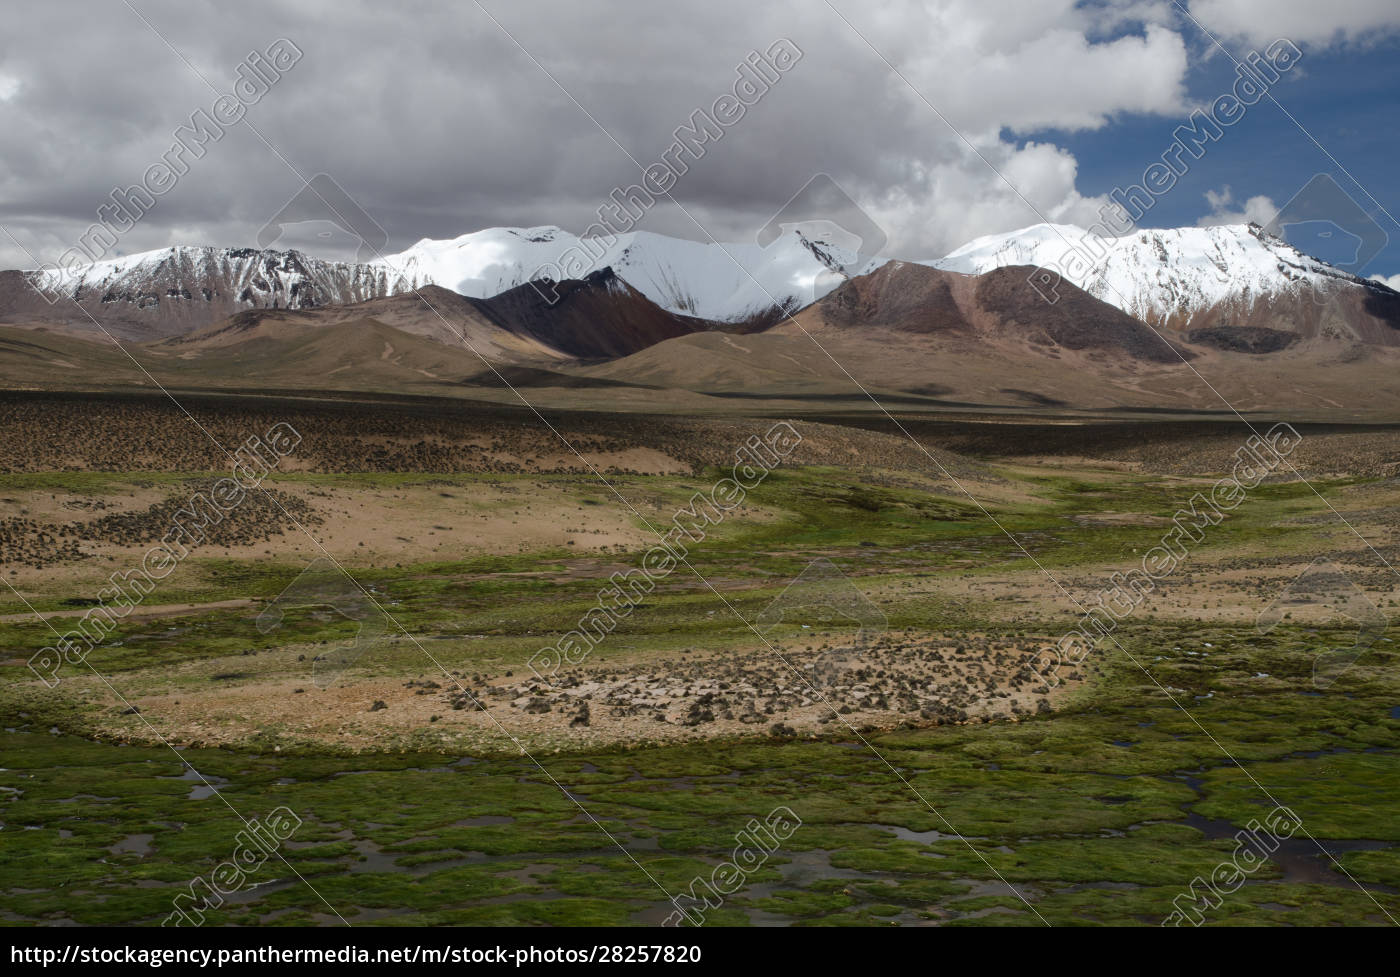 high, plateau, and, mountains, in, lauca - 28257820